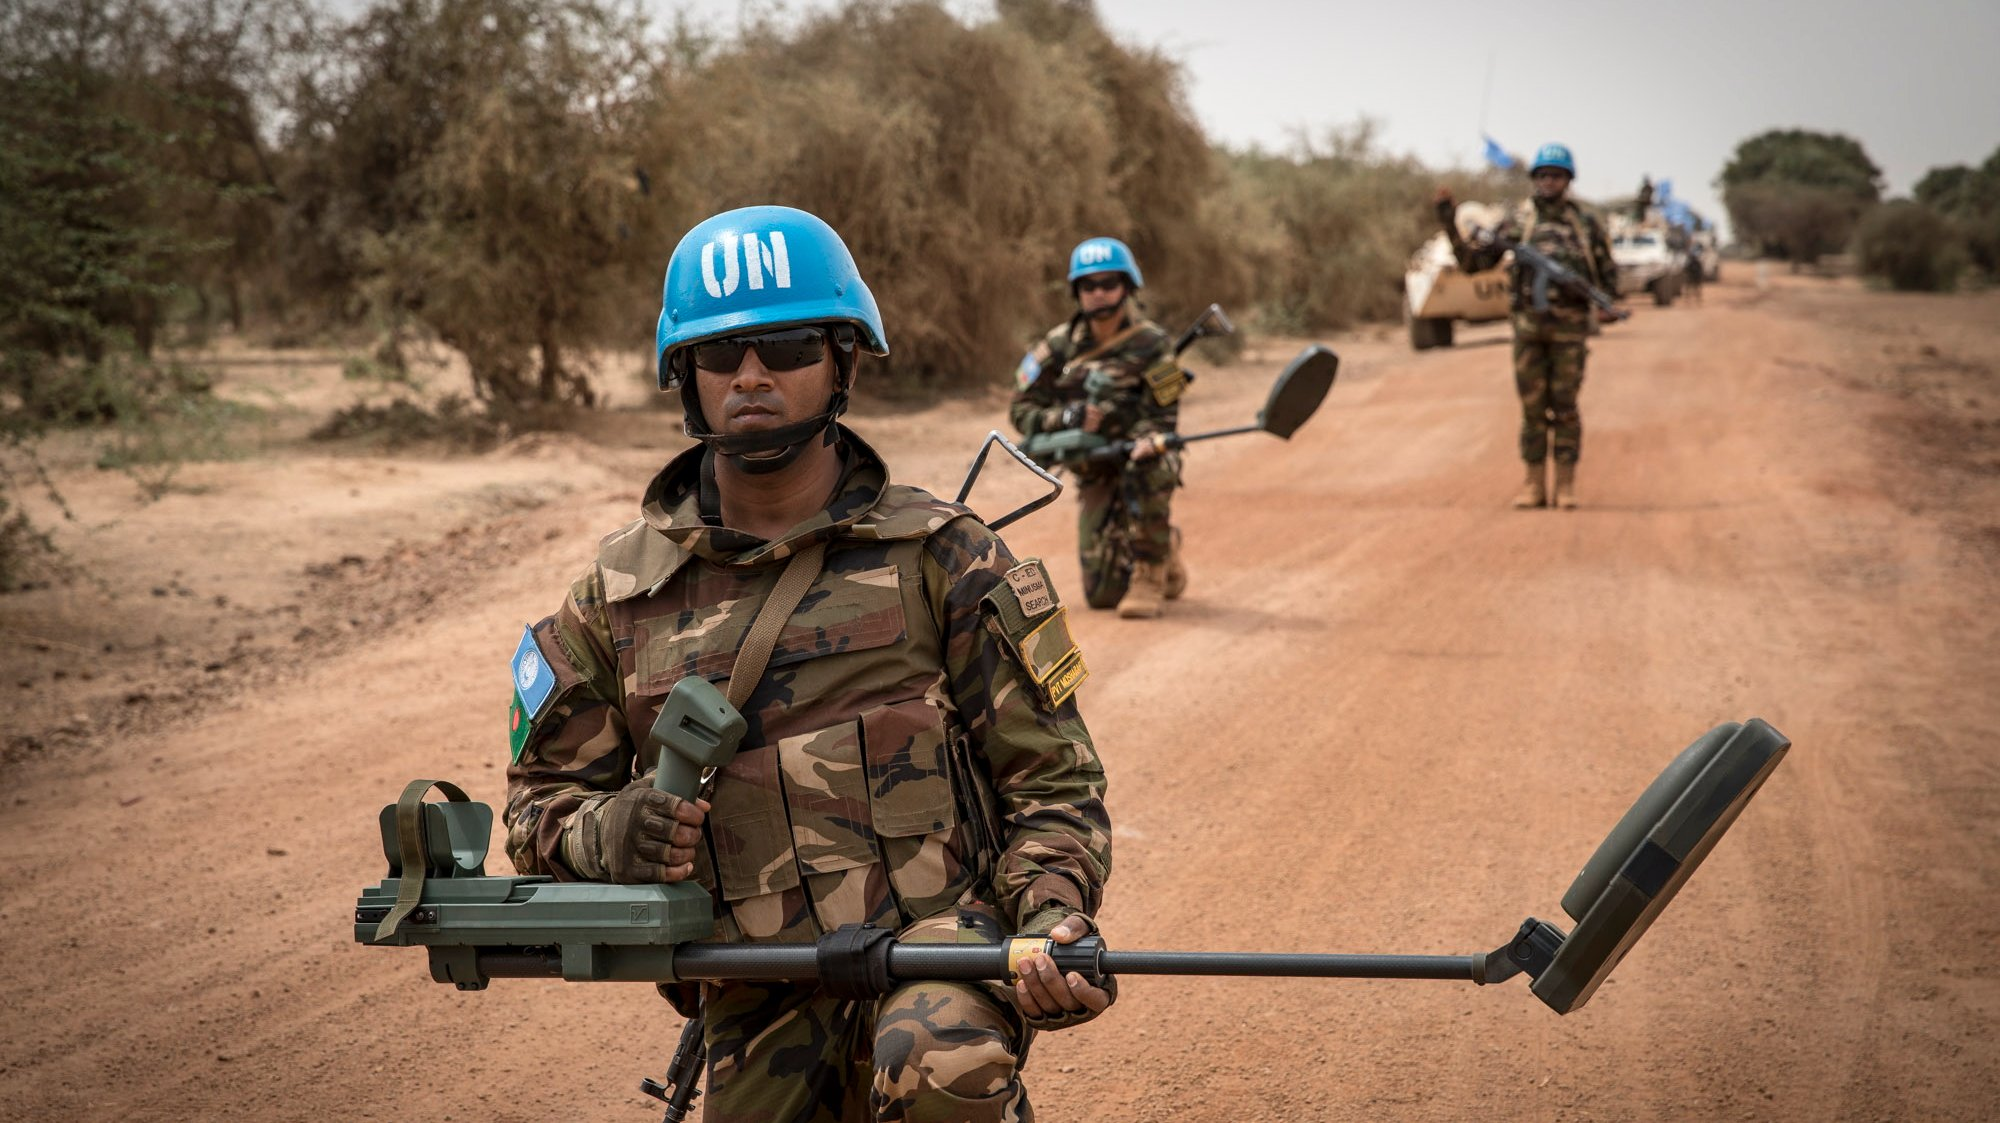 epa07519672 A handout photo made available by MINUSMA, a United Nations peacekeeping force in Mali, showing UN peacekeeping soldiers with mine-detecting devices walking ahead of a convoy with armoured vehicles on patrol at a undisclosed location in Mali, 27 March 2019. Reports on 21 April 2019 state one UN peacekeeper was killed and four others wounded in an attack 20 April against MINUSMA forces in Mali's Mopti region. MINUSMA said in a statement that a UN convoy was attacked by using an improvised explosive device, also called IED. UN confirmed those dead and injured were from Egypt. One attacker was reportedly killed while eight others were taken prisoners.  EPA/MINUSMA HANDOUT  HANDOUT EDITORIAL USE ONLY/NO SALES